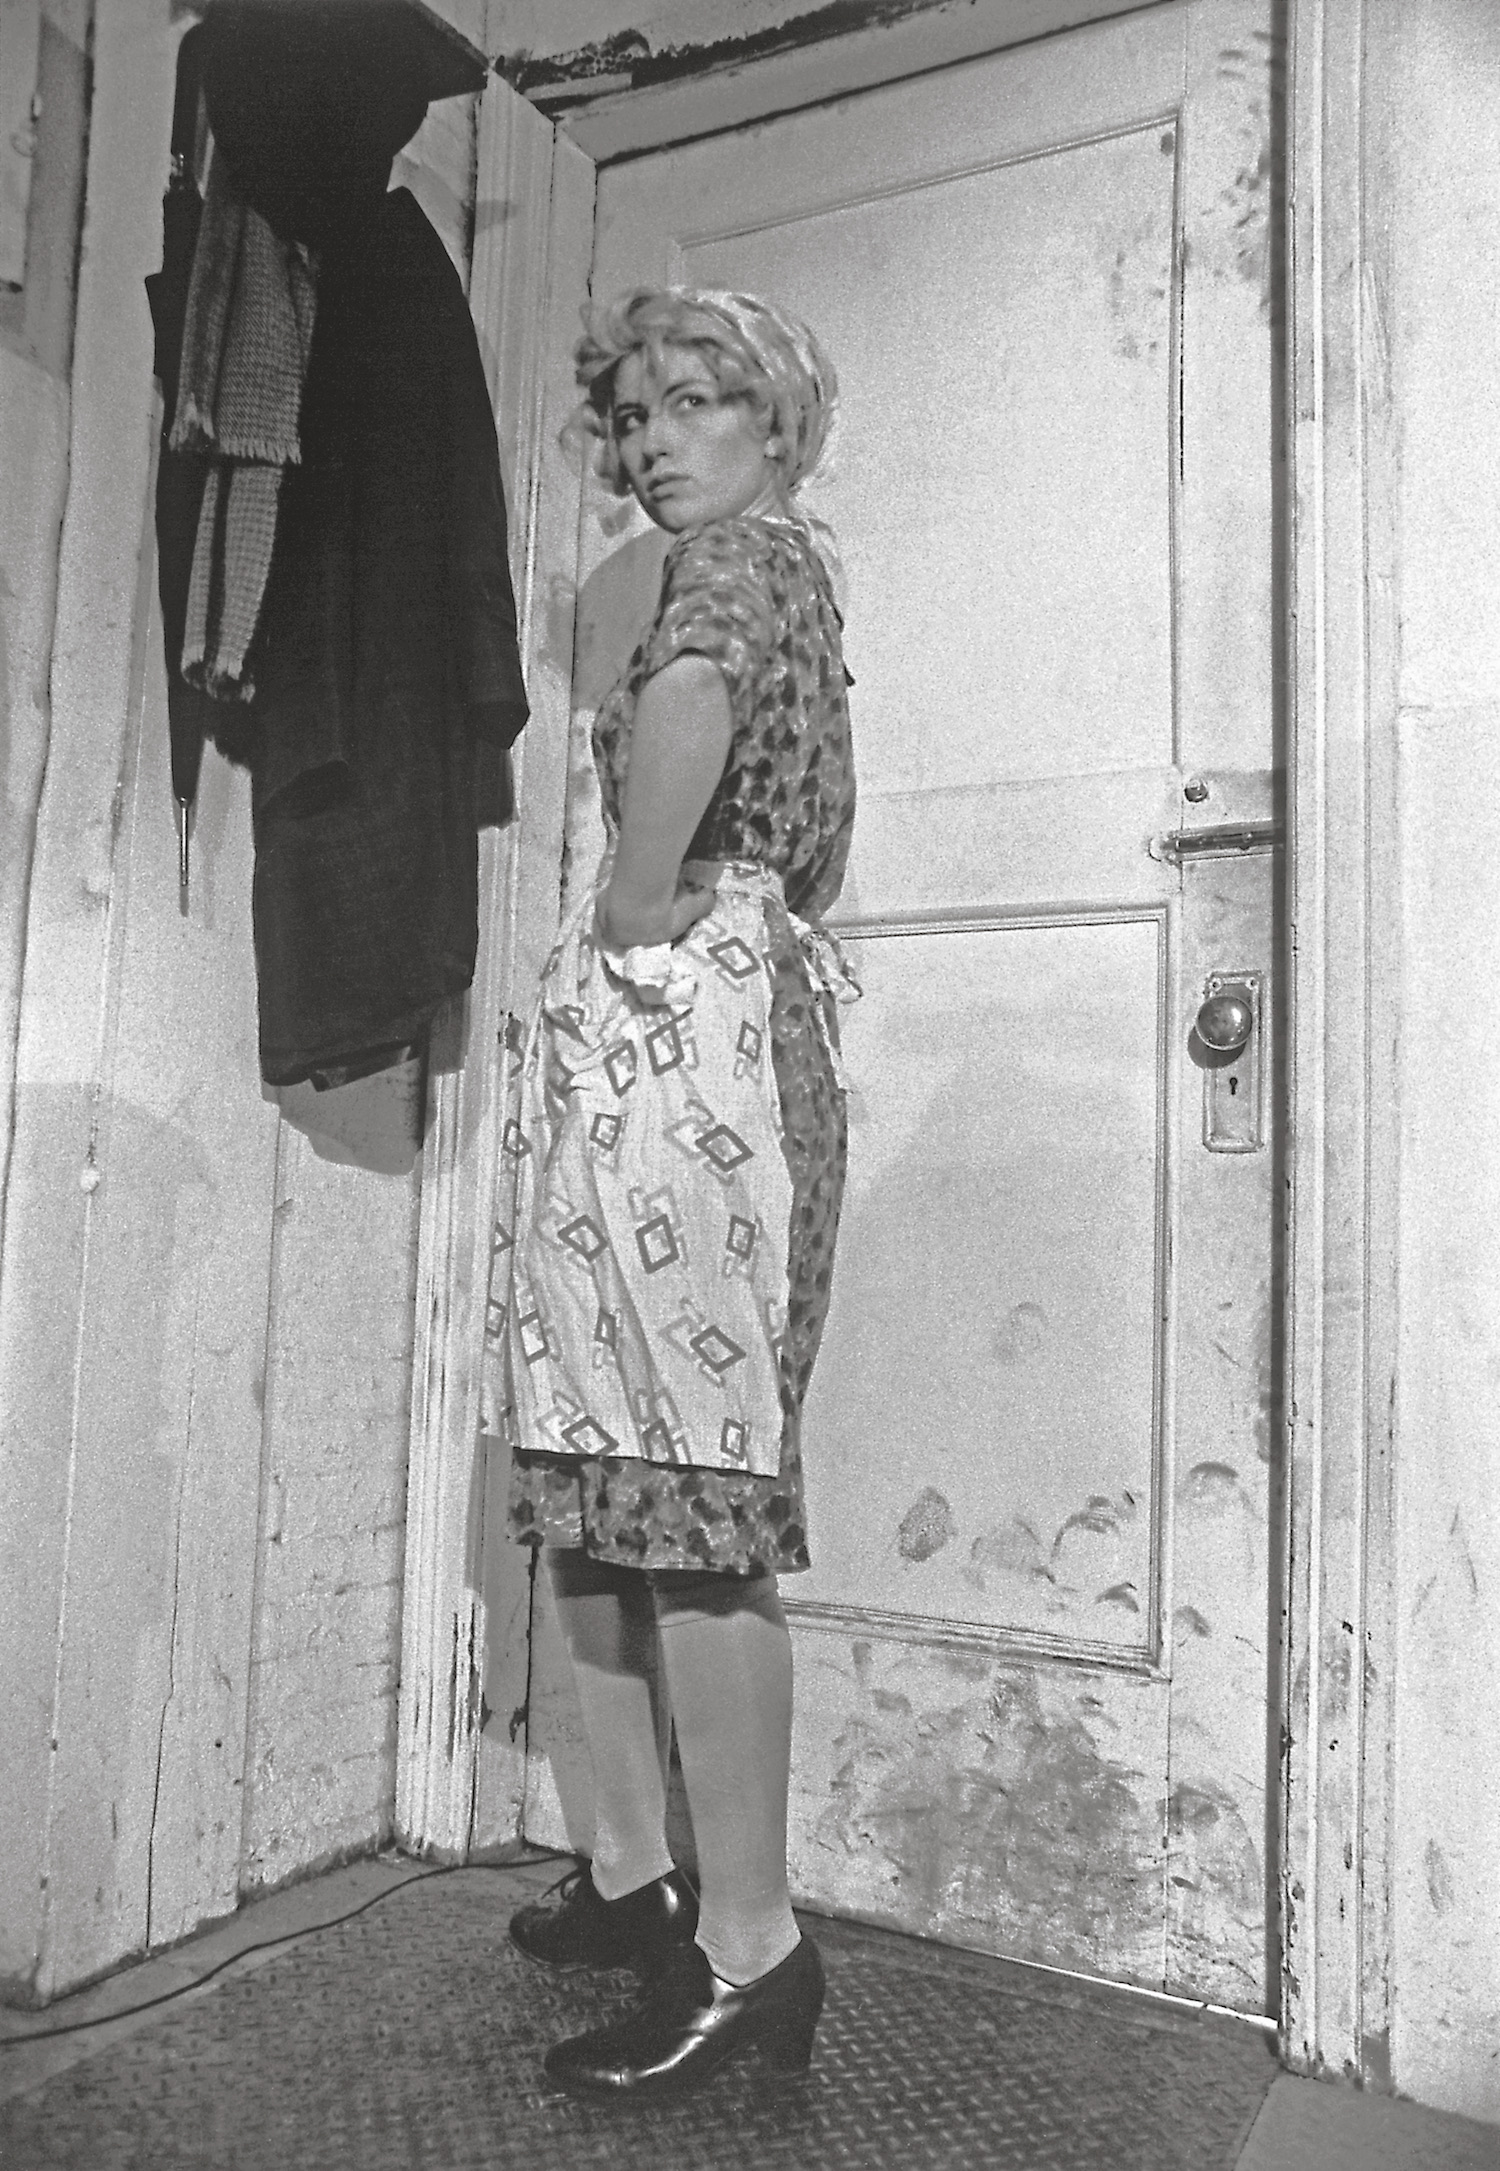 Cindy Sherman, Untitled Film Still #35,1979. Courtesy of the artist and Metro Pictures, New York.